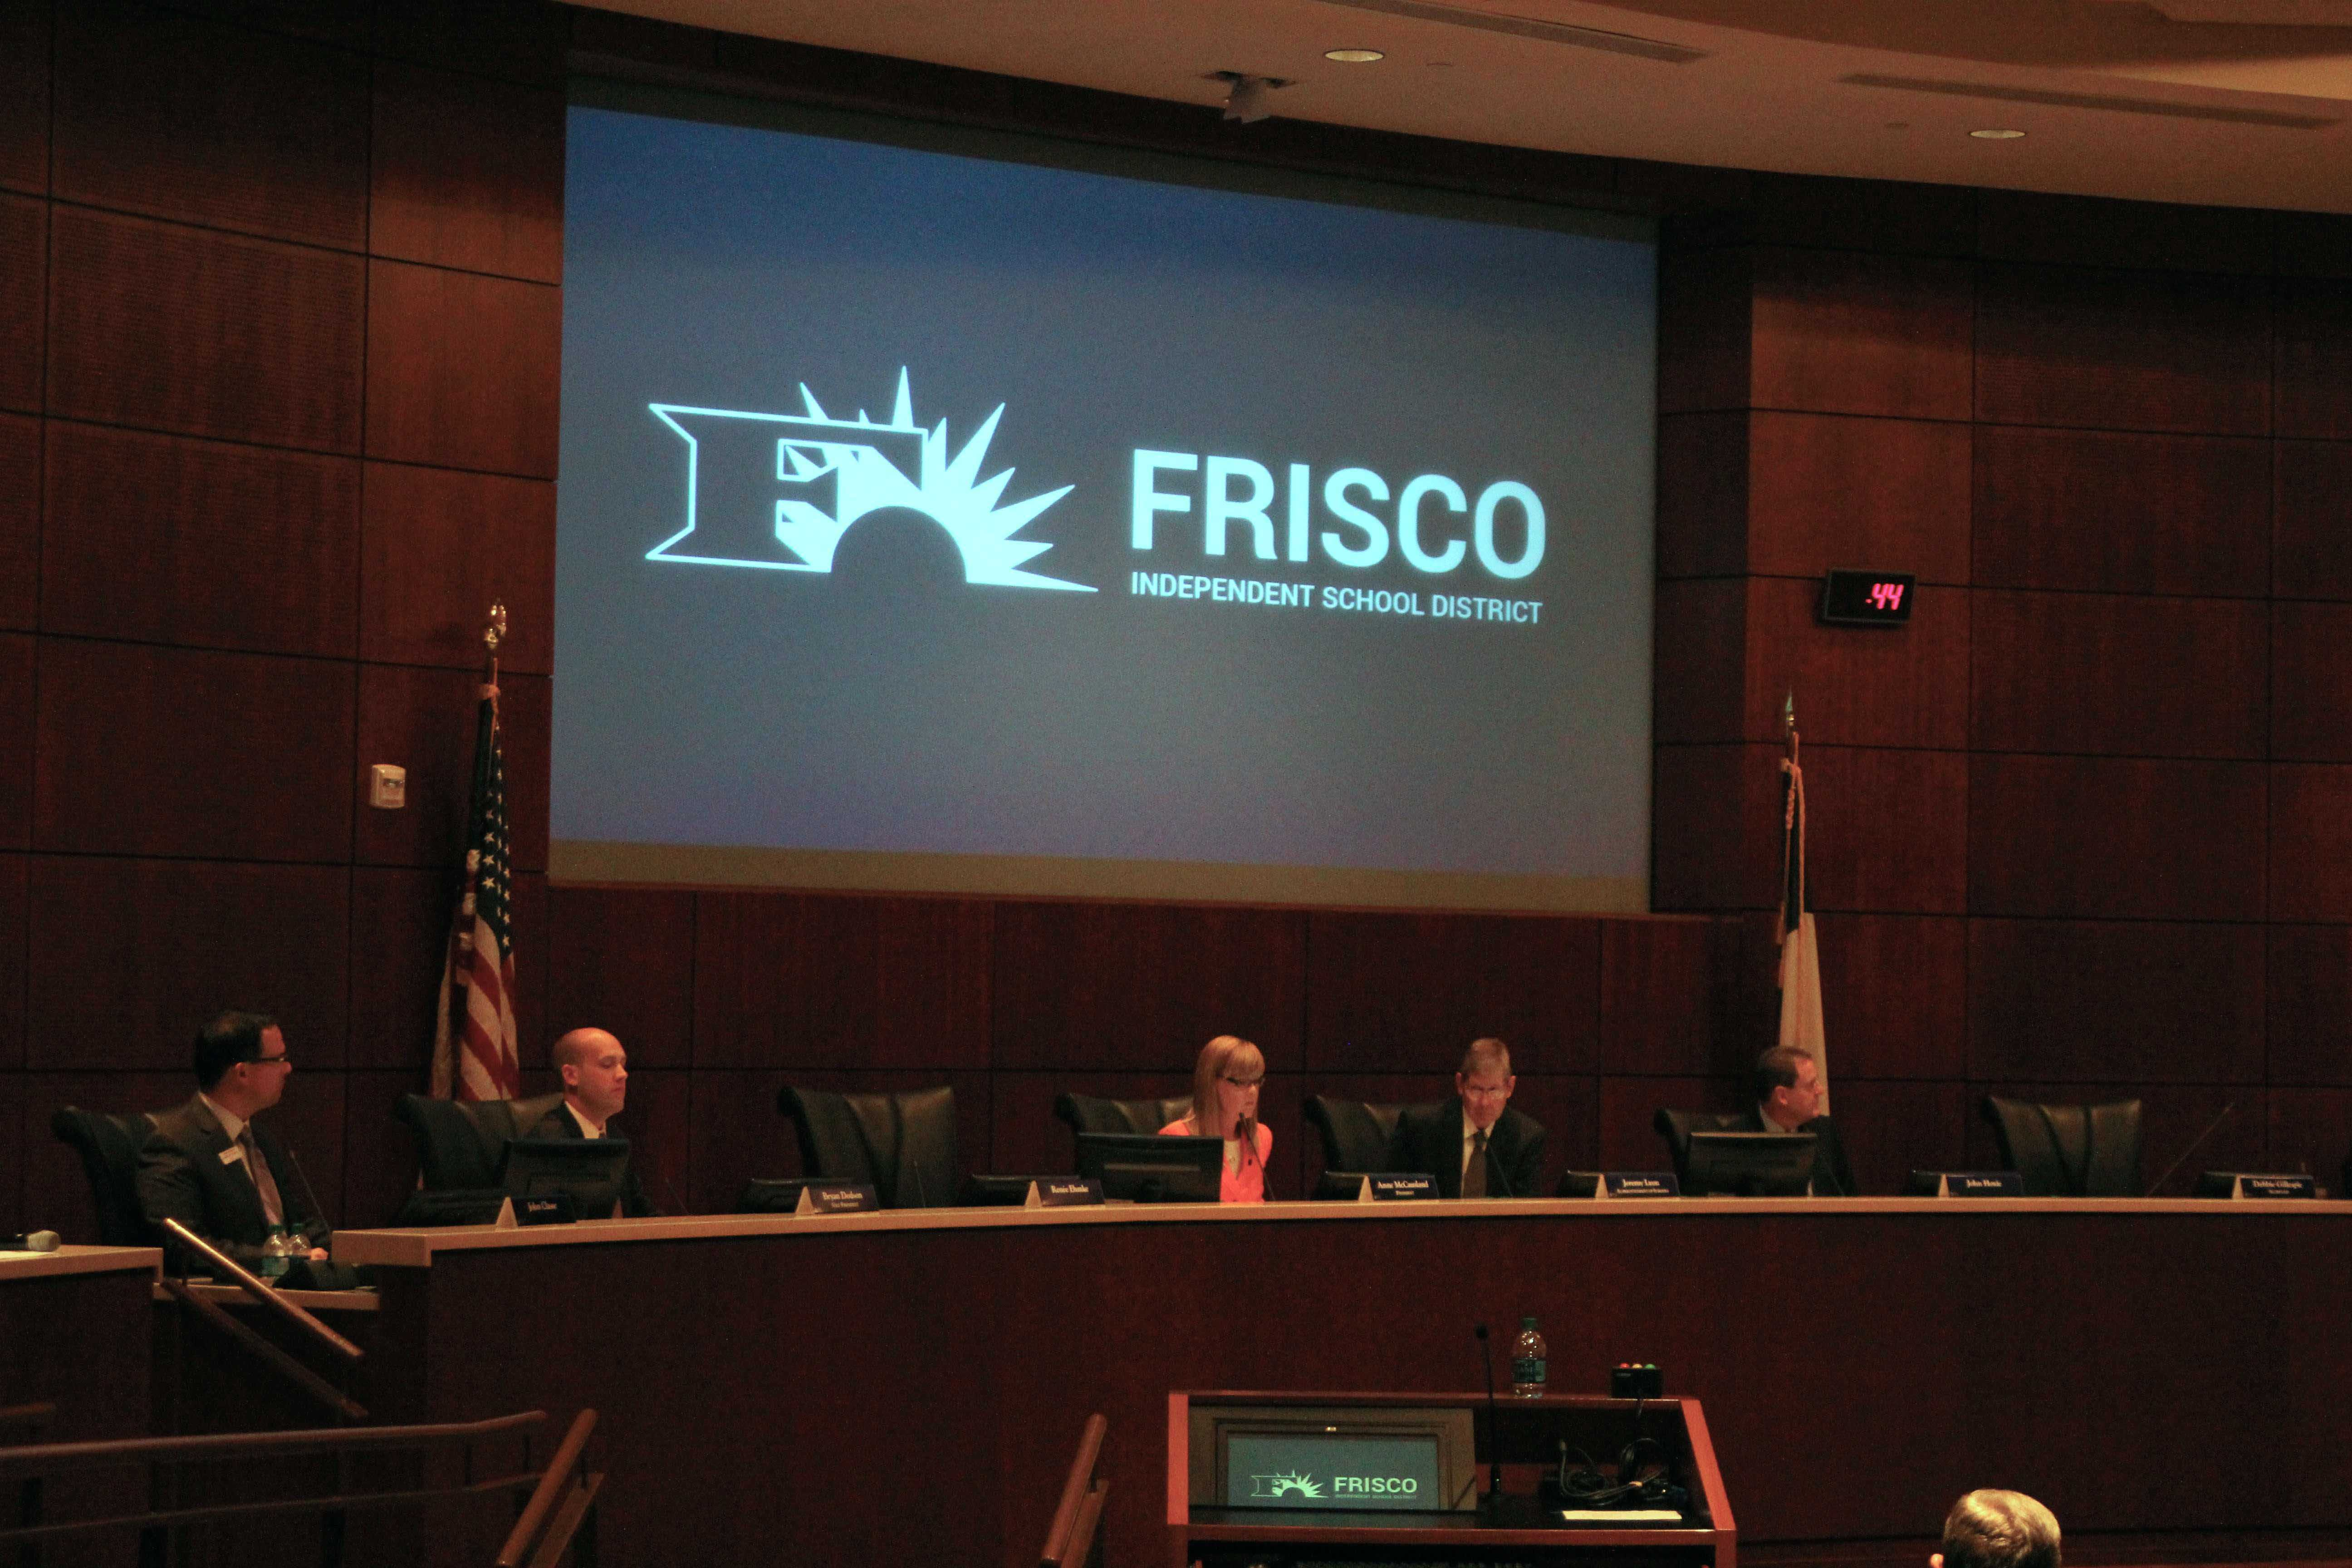 With 977 students currently enrolled in the Take Flight program within Frisco ISD, change could be soon to come as Monday's Board of Trustees meeting mentioned that with approval, FISD could be the first public school district in the nation to have an independent accredited dyslexia therapist training program.